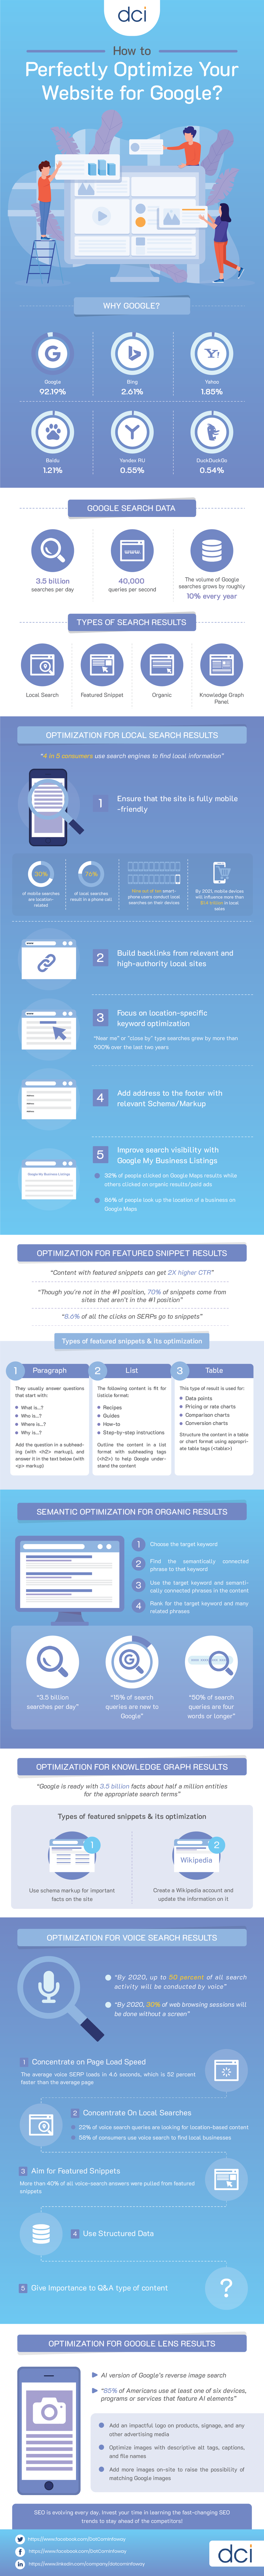 google search types